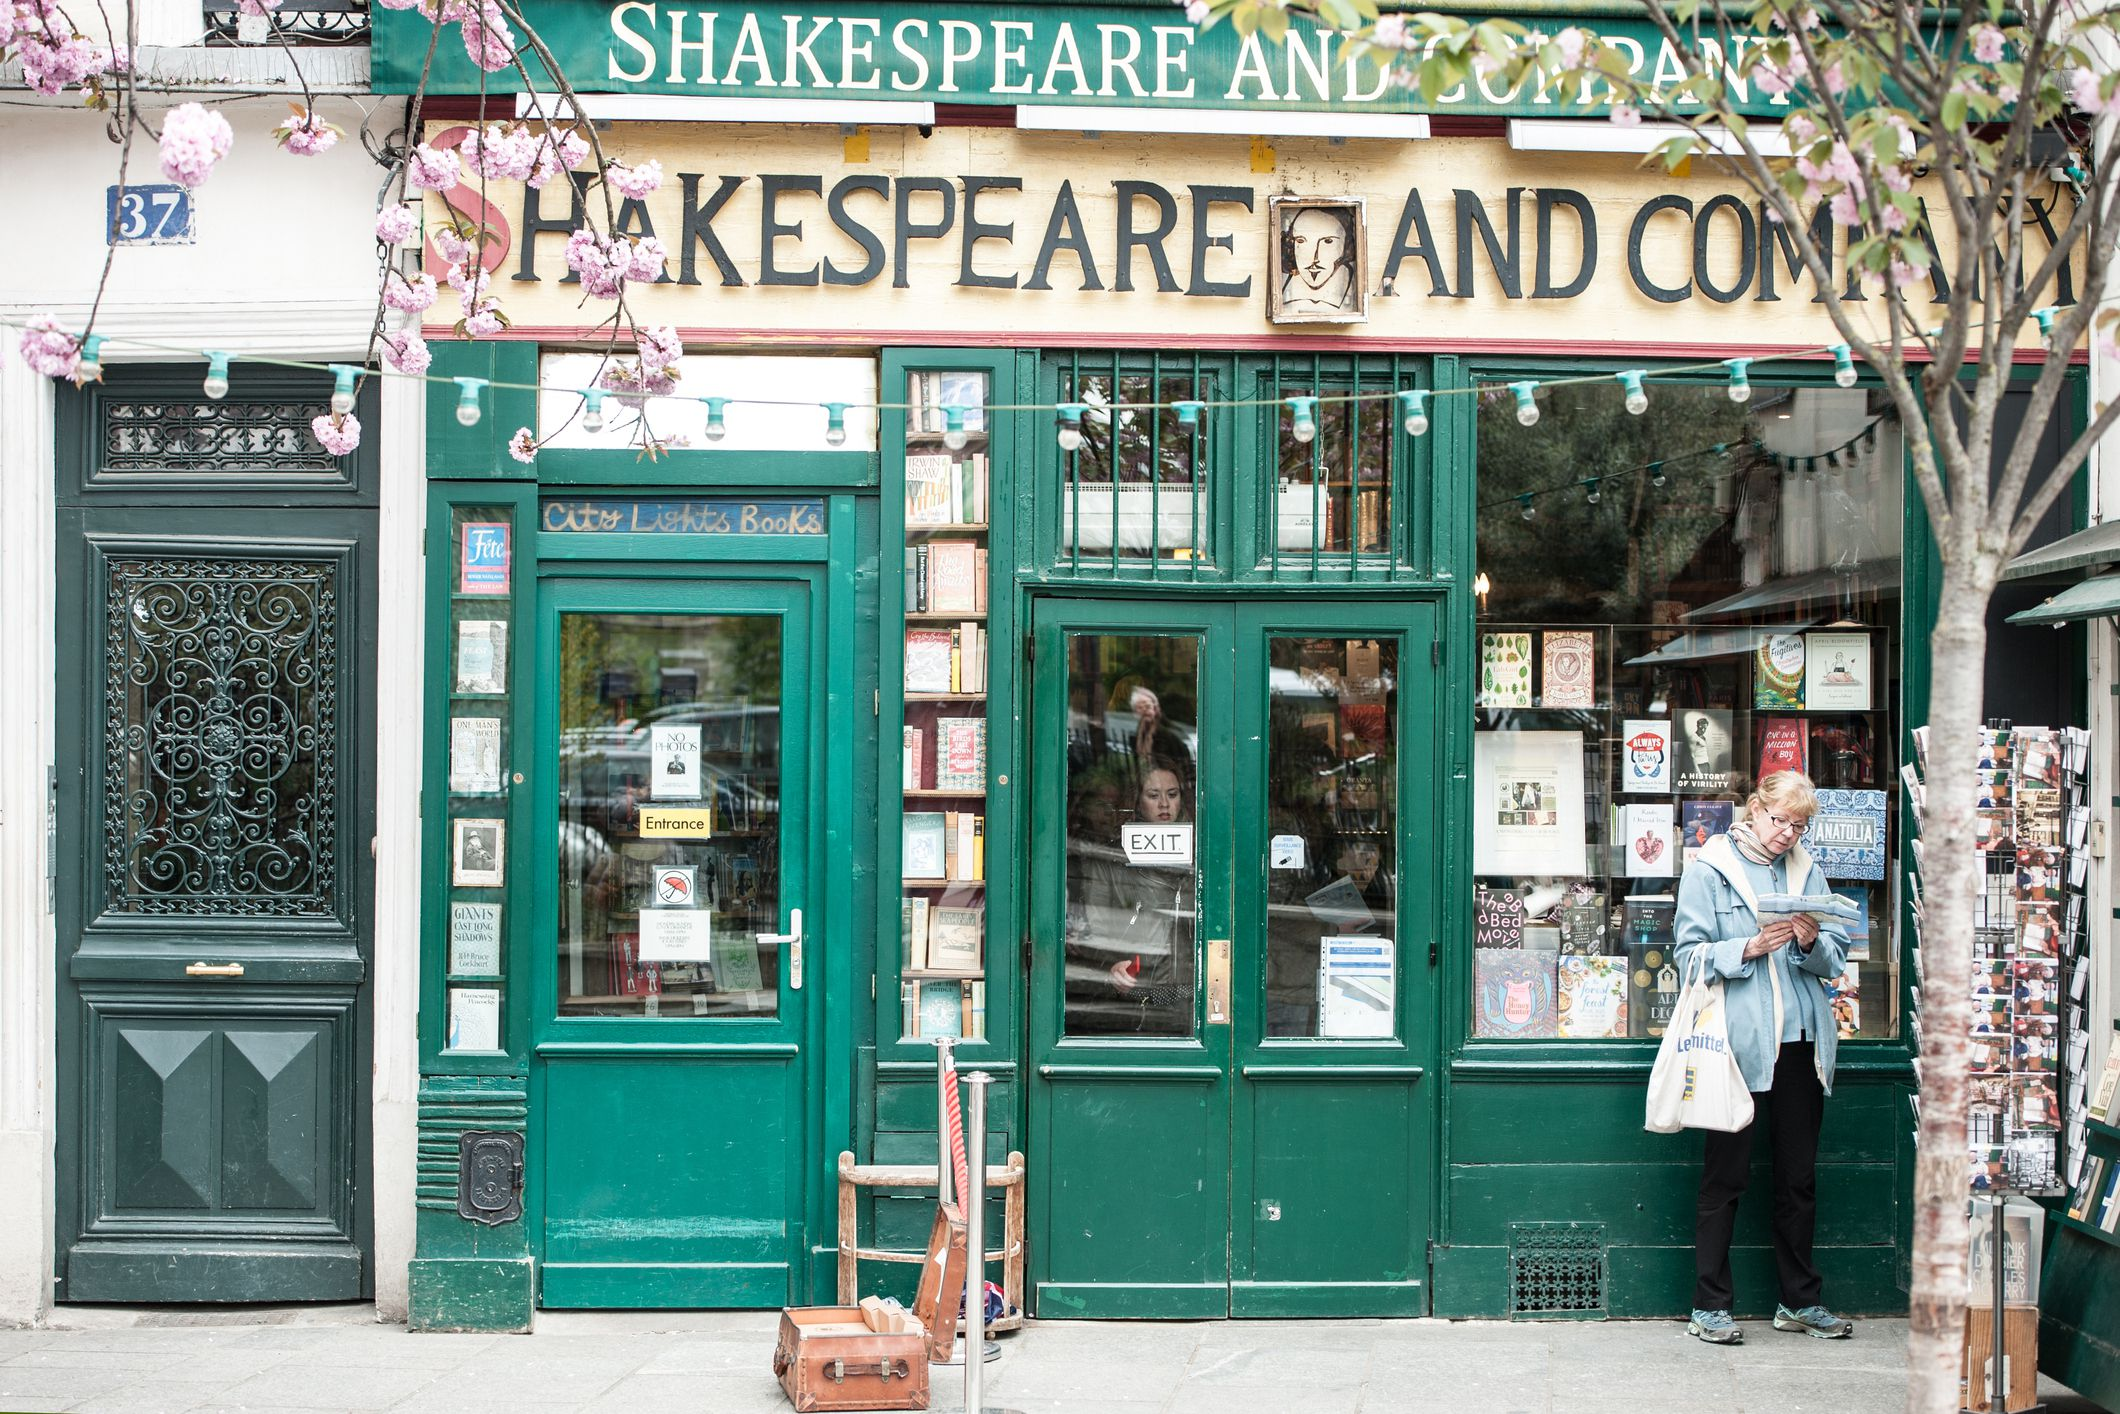 Shakespeare and Company bookstore in Paris (France)